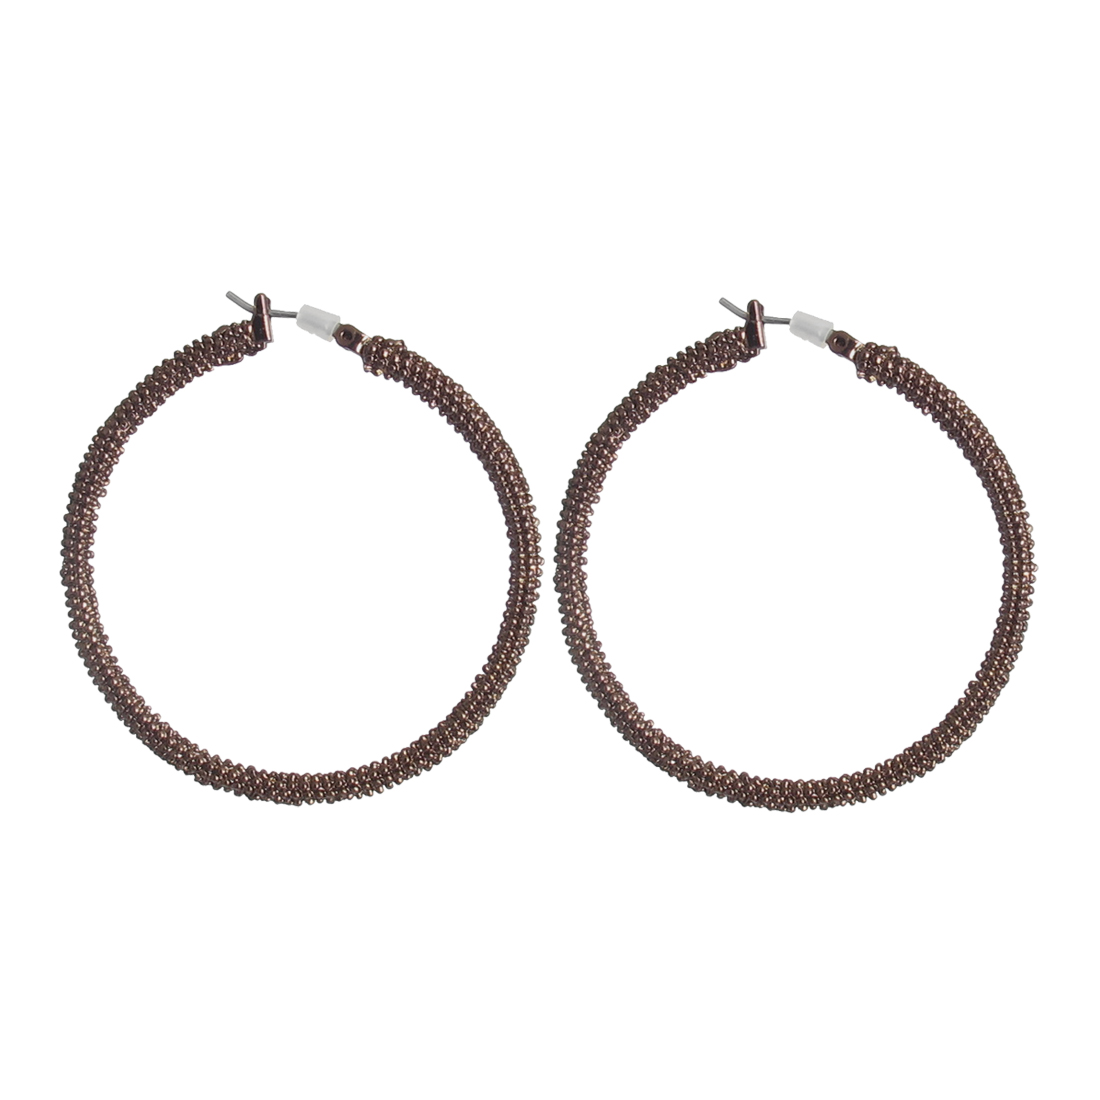 "1.8"" Dia Coffee Color Metal Edge Textured Circle Hoop Pierced Earrings Pair for Lady Women"